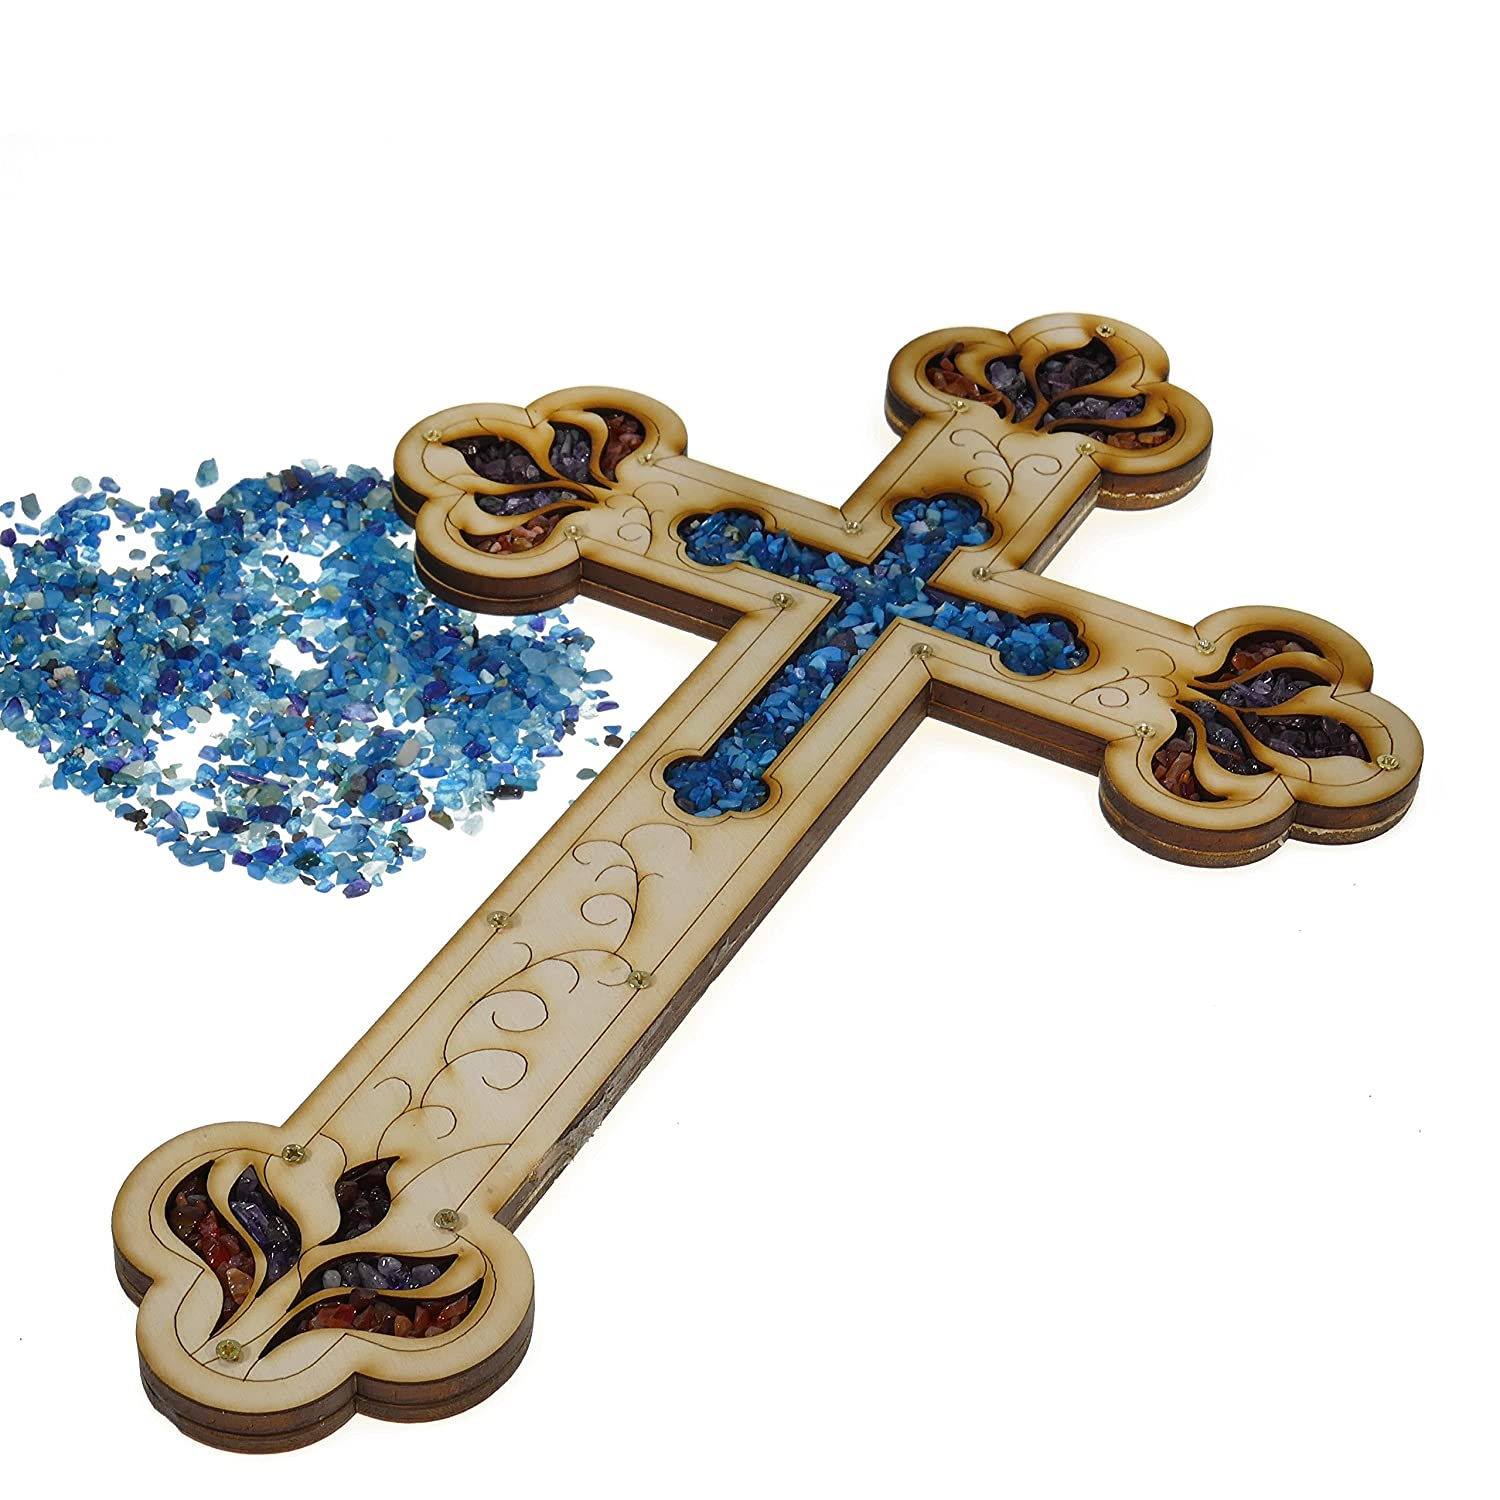 shop amazon com wall crosses wall wood cross vintage jerusalem gemstones antique style decor 11